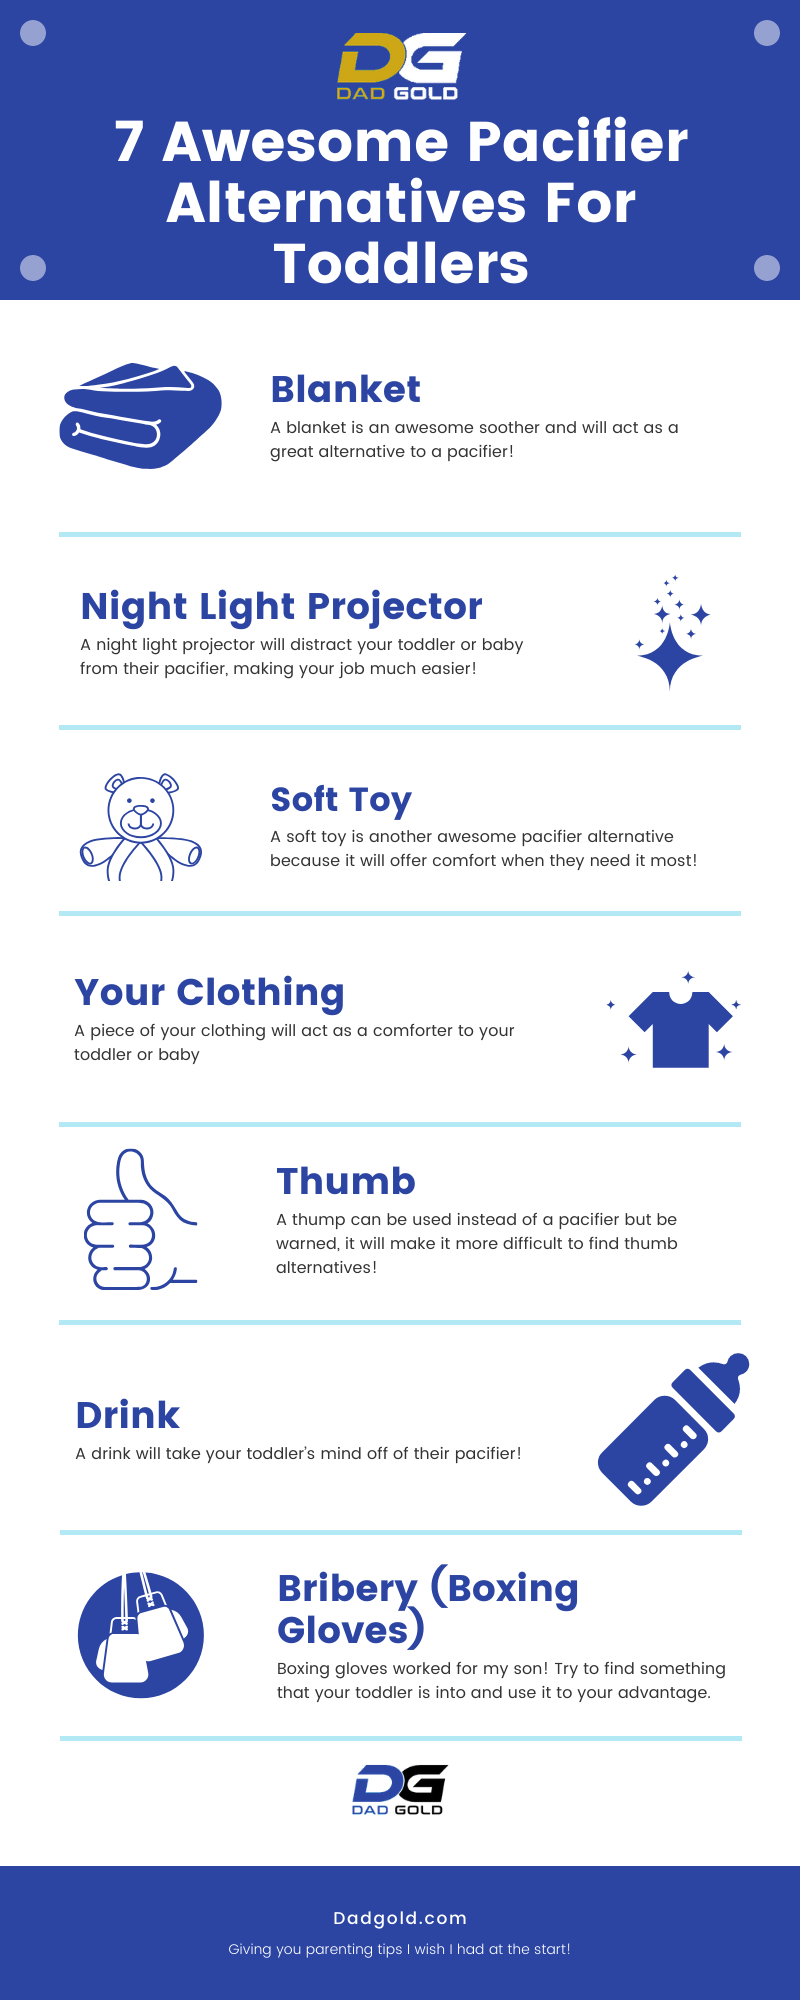 Pacifier Alternatives For Toddlers Infographic